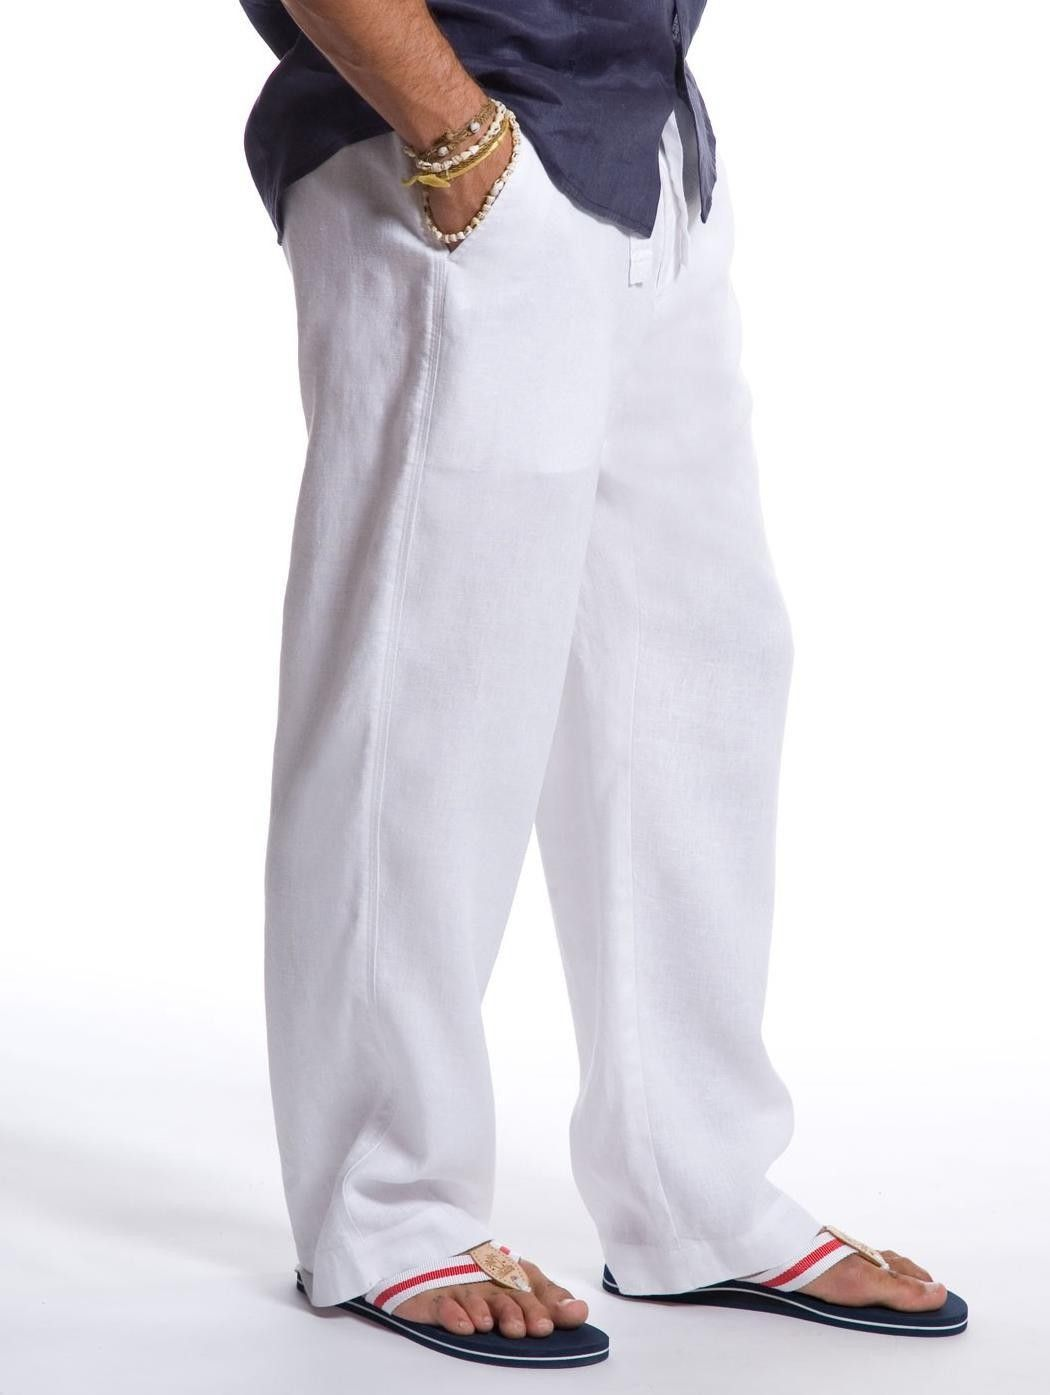 Beachcomber Linen Pants - White Linen Pants for Men | Island ...